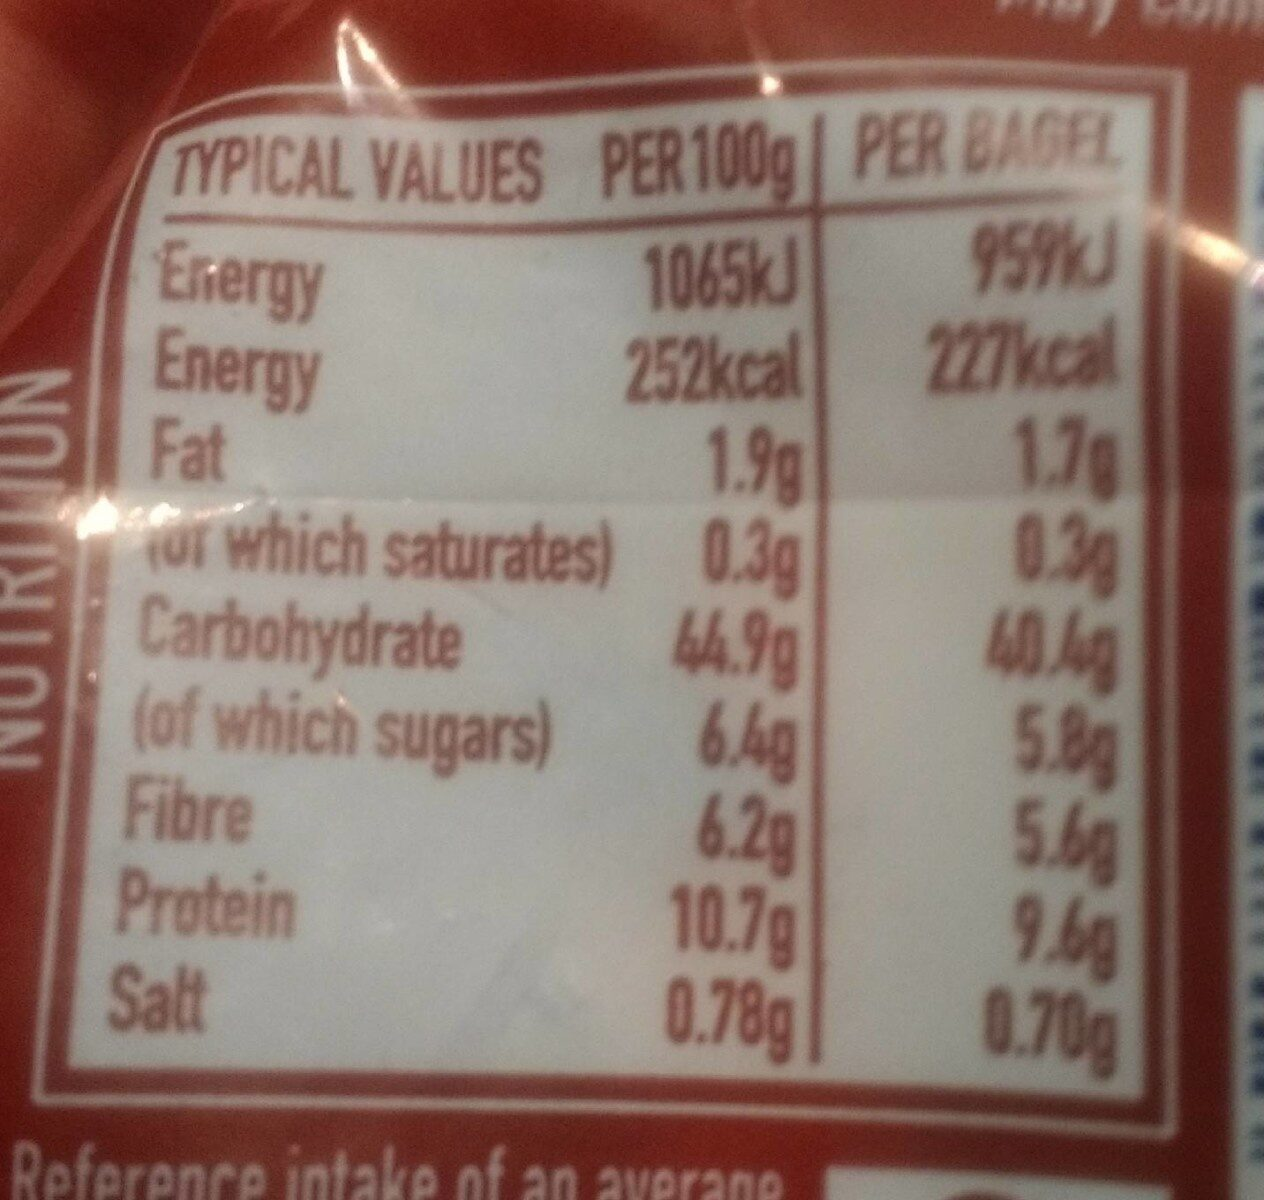 Bakery Co. 5 Wholemeal Bagels - Nutrition facts